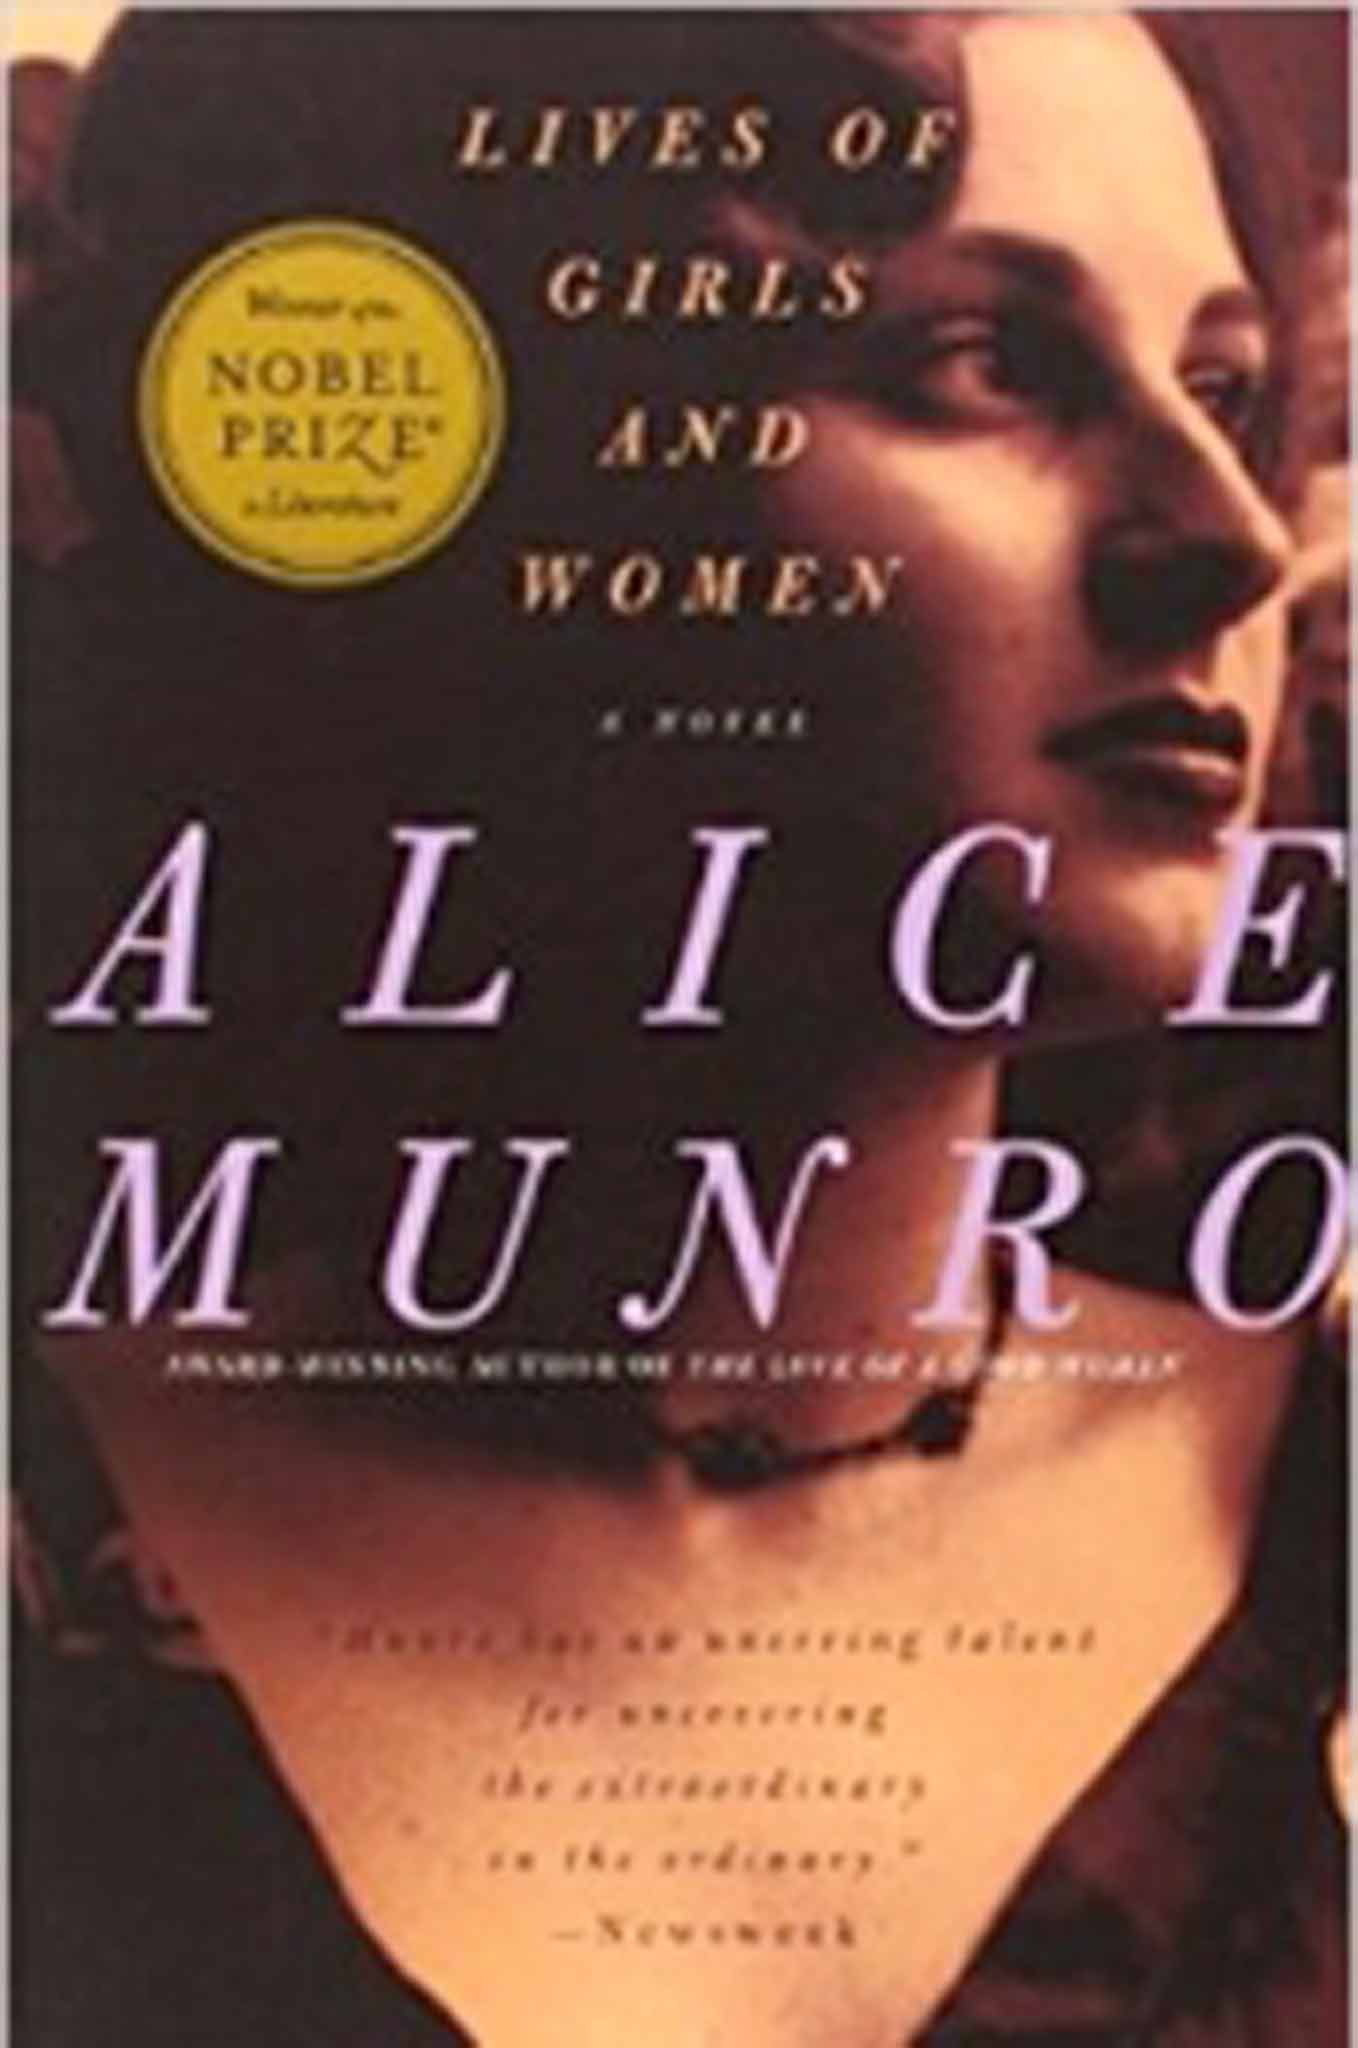 lives of girls and women alice munro essay Alice munro - a feminist writer essay on feminist issues raised in alice munro's short in 'selected stories' alice munro presents women and their place in.